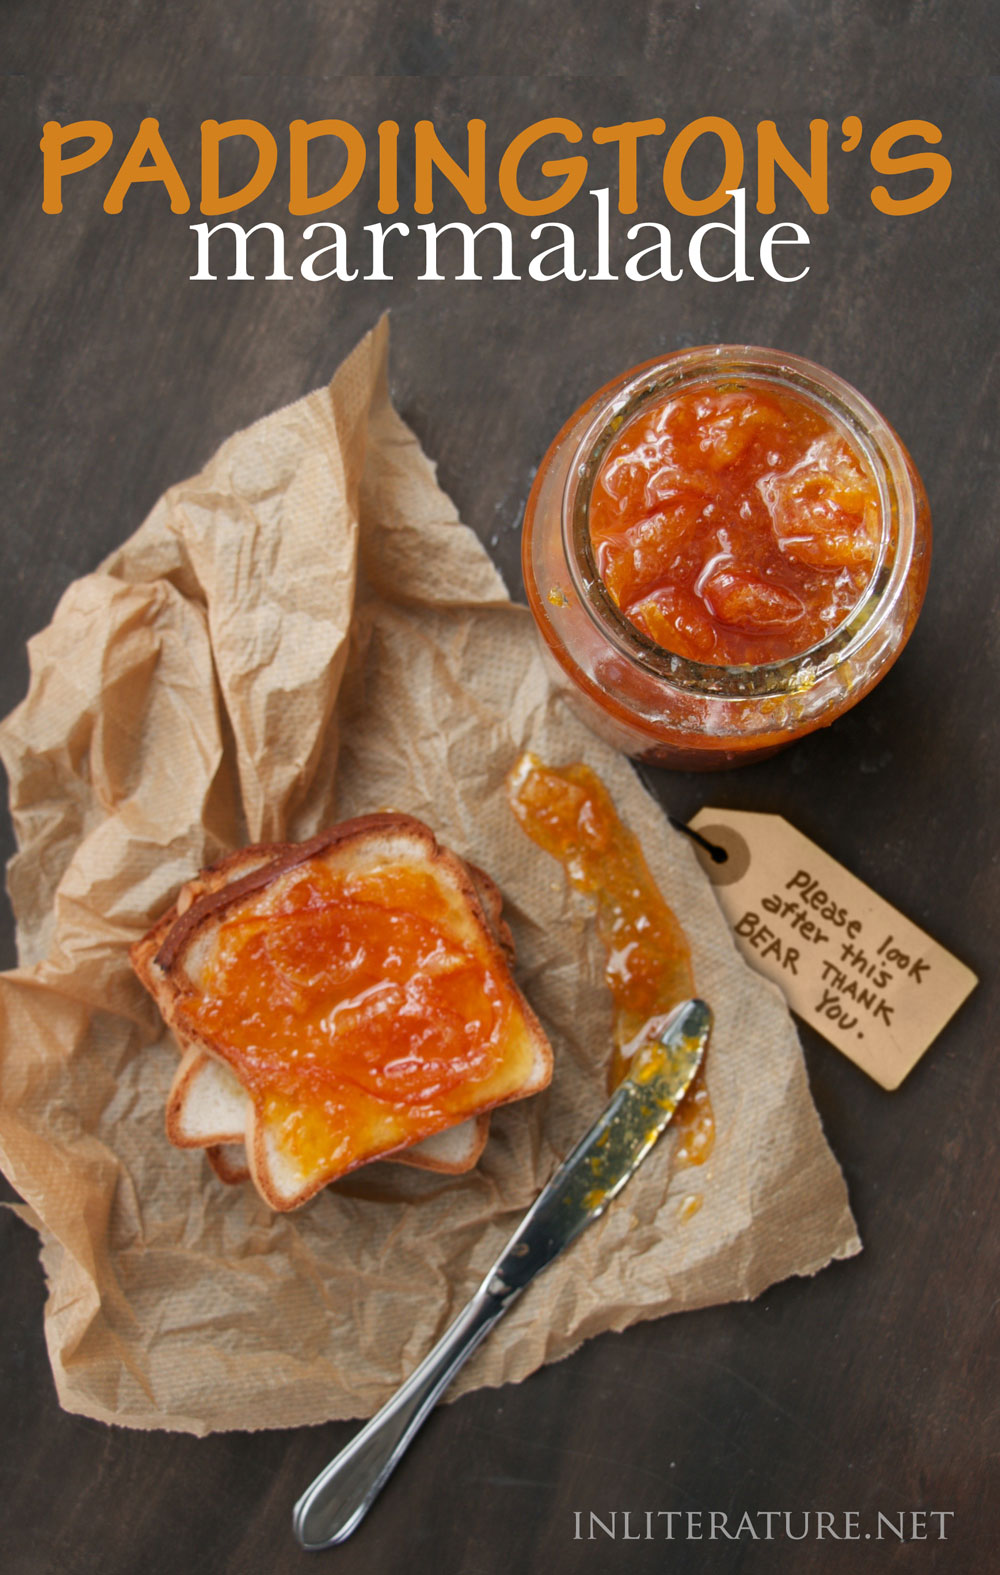 Make this classic marmalade recipe that Paddington would love to use in his sandwiches!